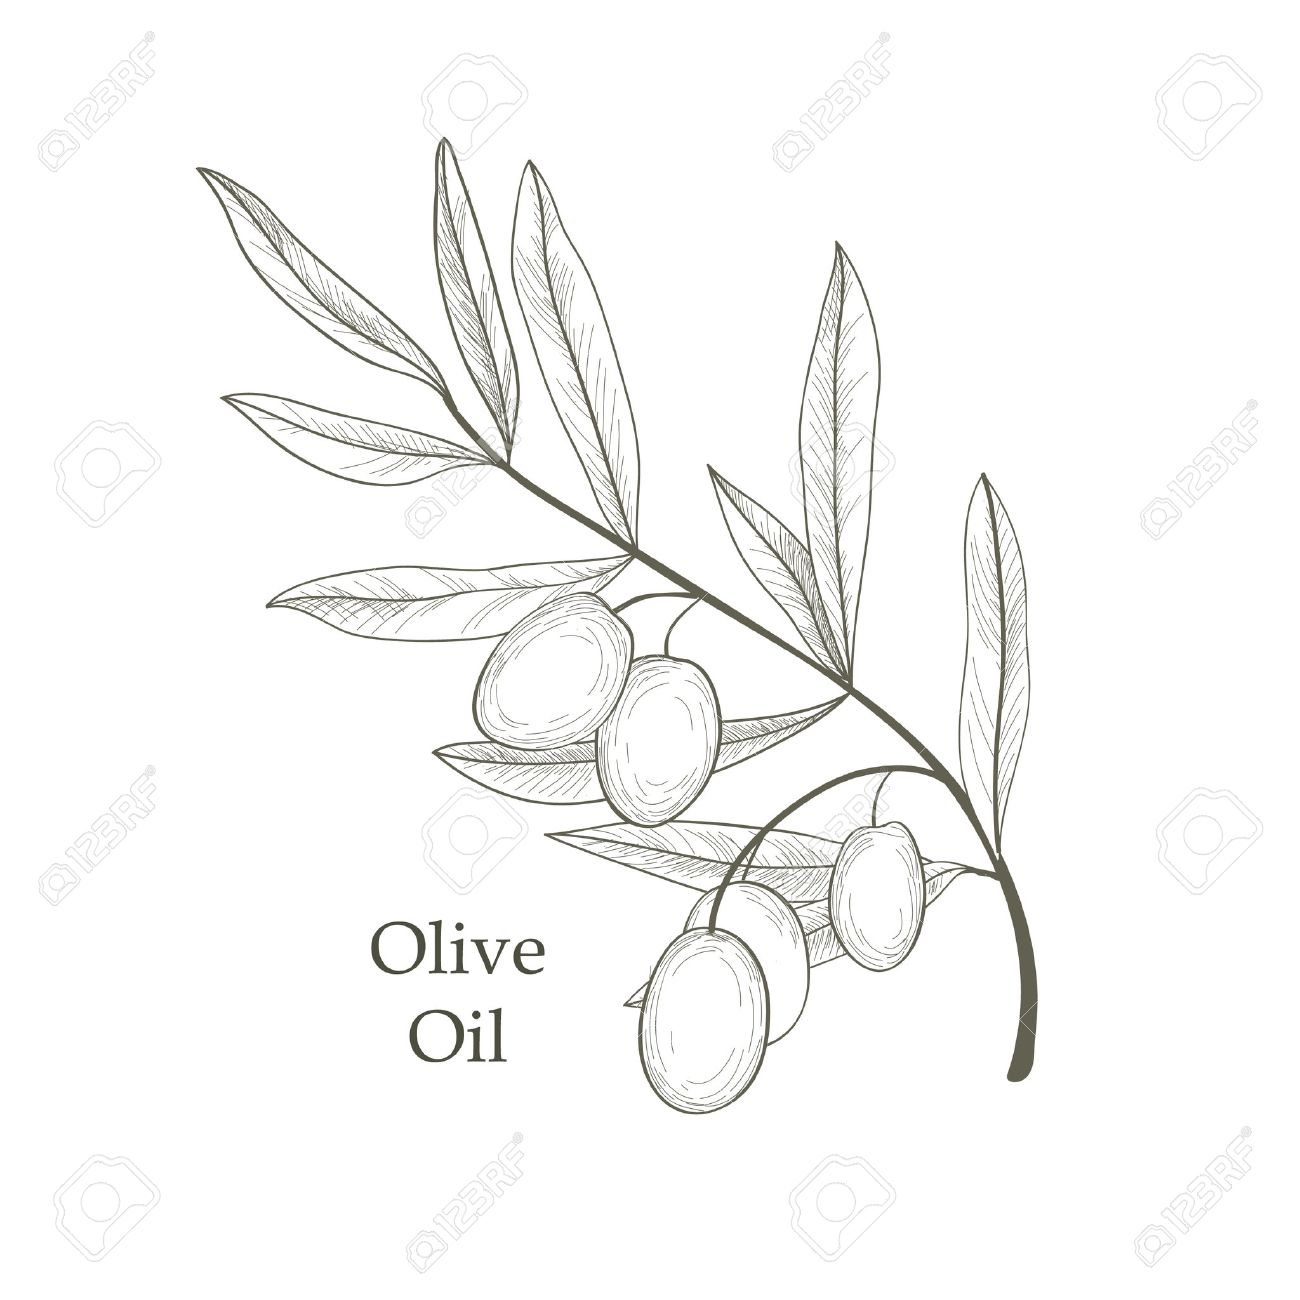 Olive Tree Branch With Olives Isolated Sketch Over White Background Retro Olive Branch Engraving Vector Illustration Royalty Free Cliparts Vetores E Ilustracoes Stock Image 48447964